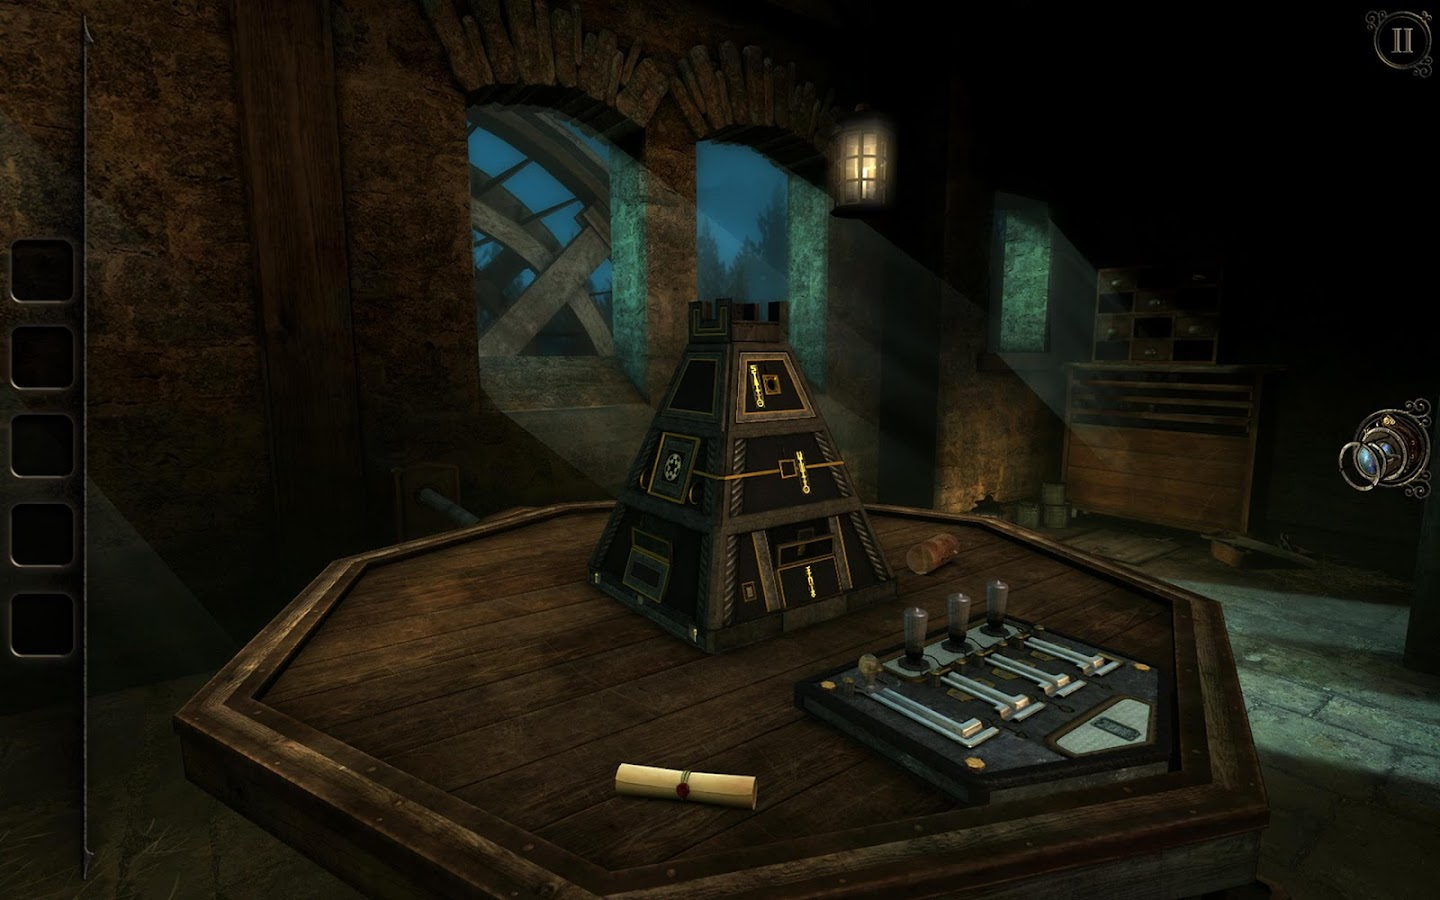 The Room Three Screenshot 7